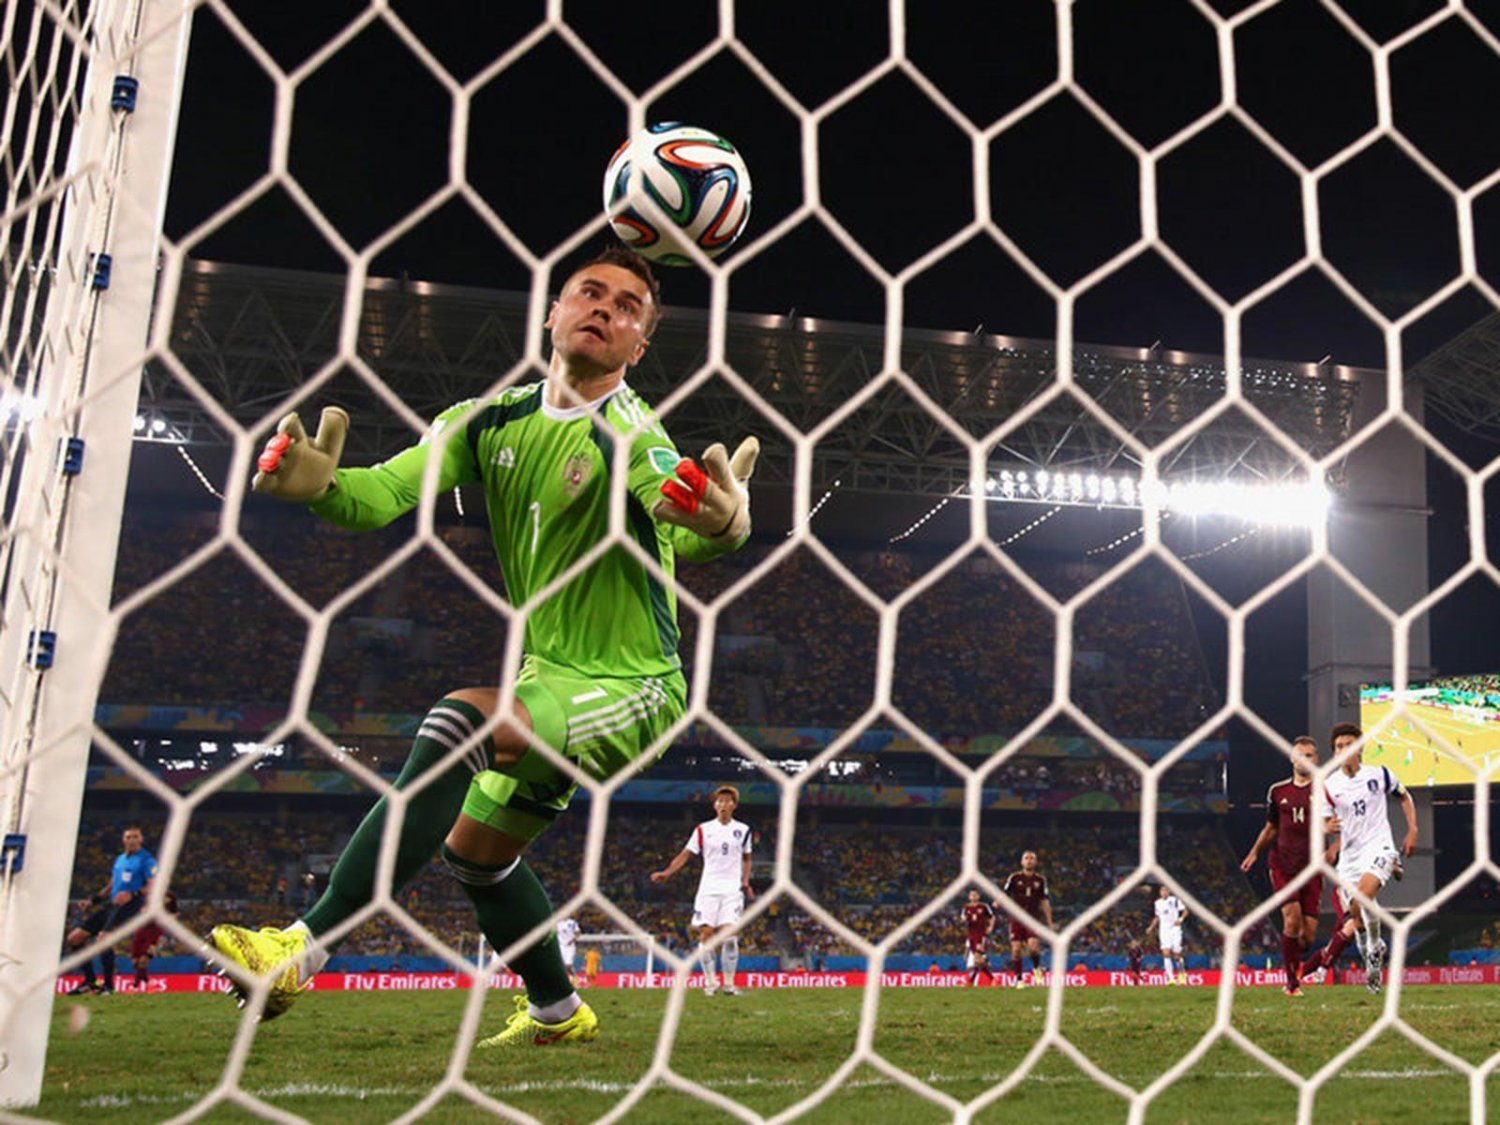 297 - 8 X 6 Photo - Football - FIFA World Cup 2014 - Russia V South Korea - Igor  Akinfeev Mistake